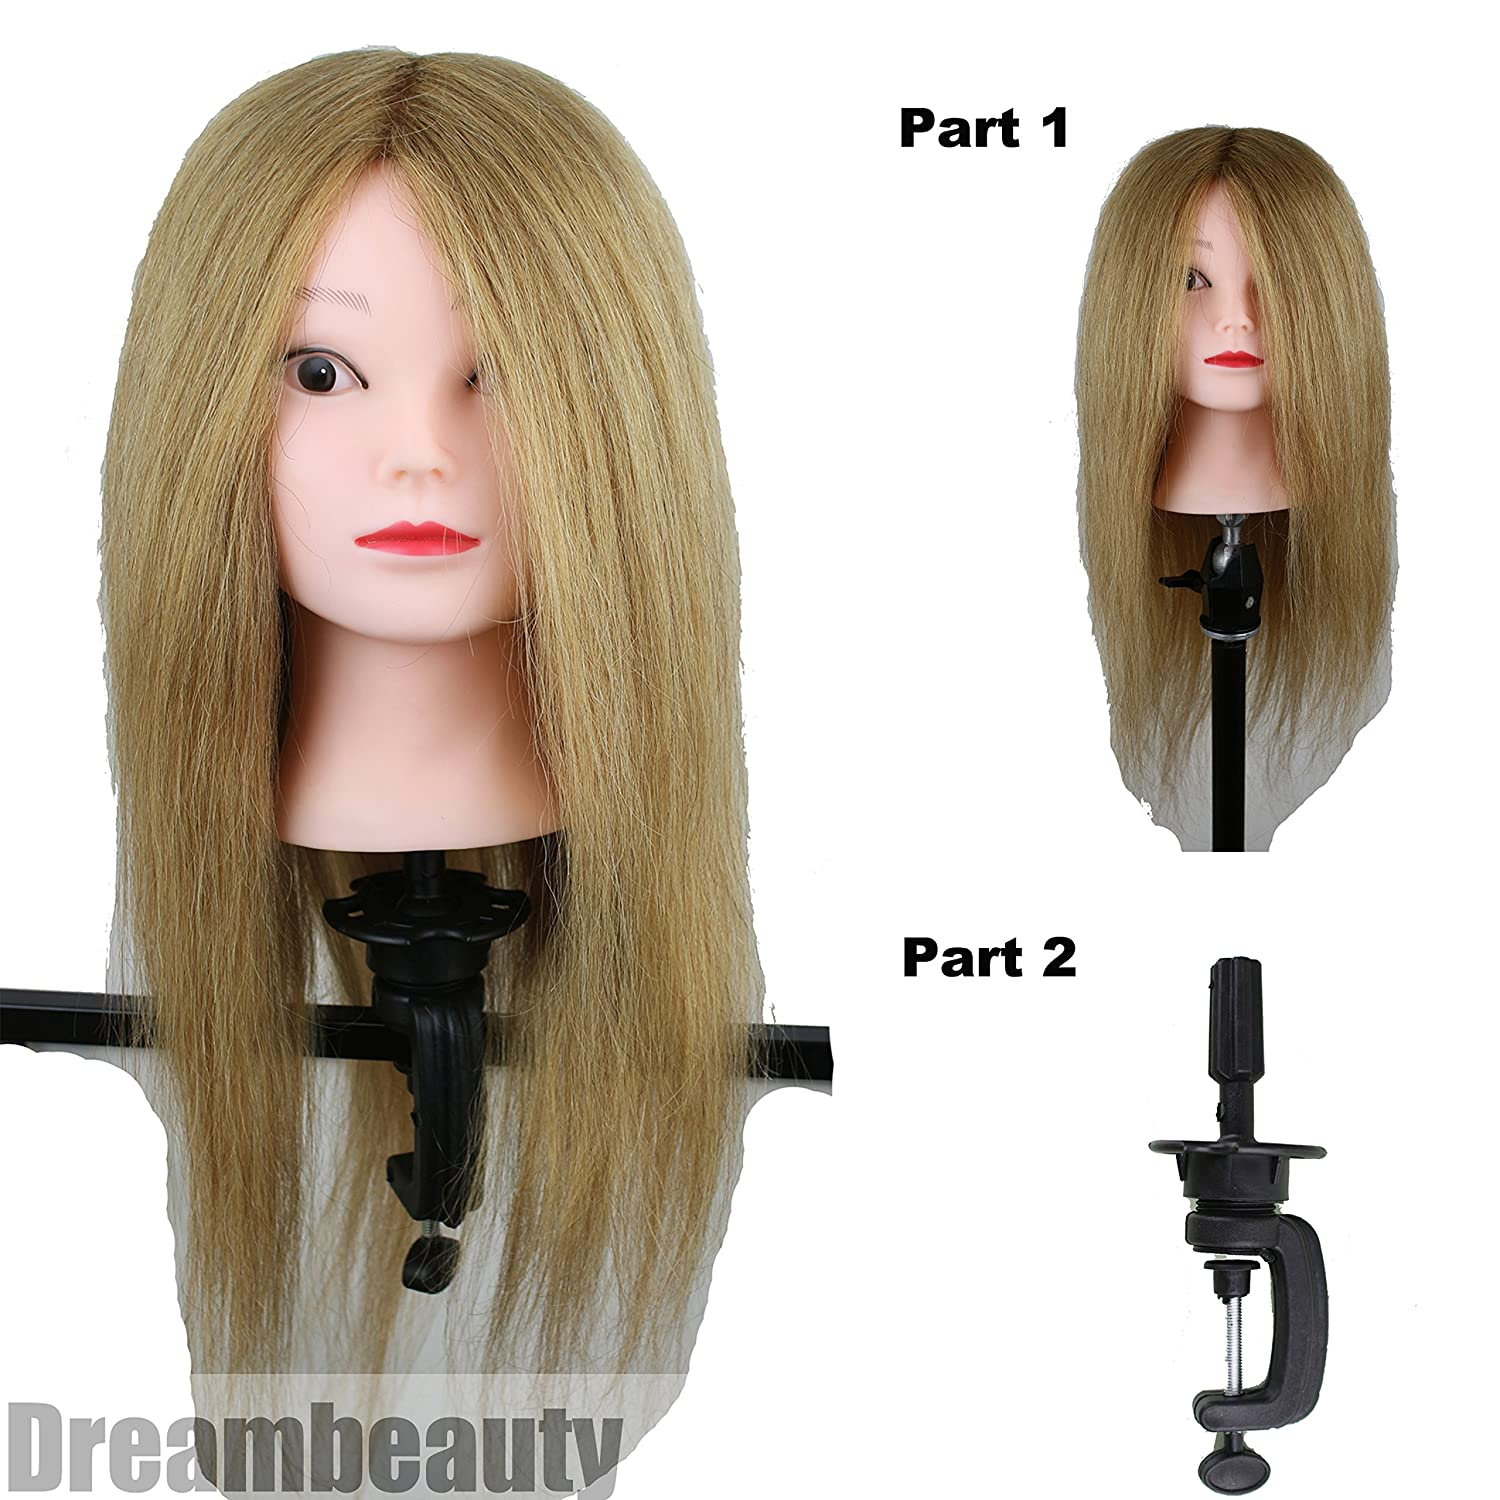 Dreambeauty Hairdressing Training Head 100% Human Hair Blonde Color Mannequin Head for Training and Exams with Table Clamp Qingdao Feiyang Hair Co. Ltd